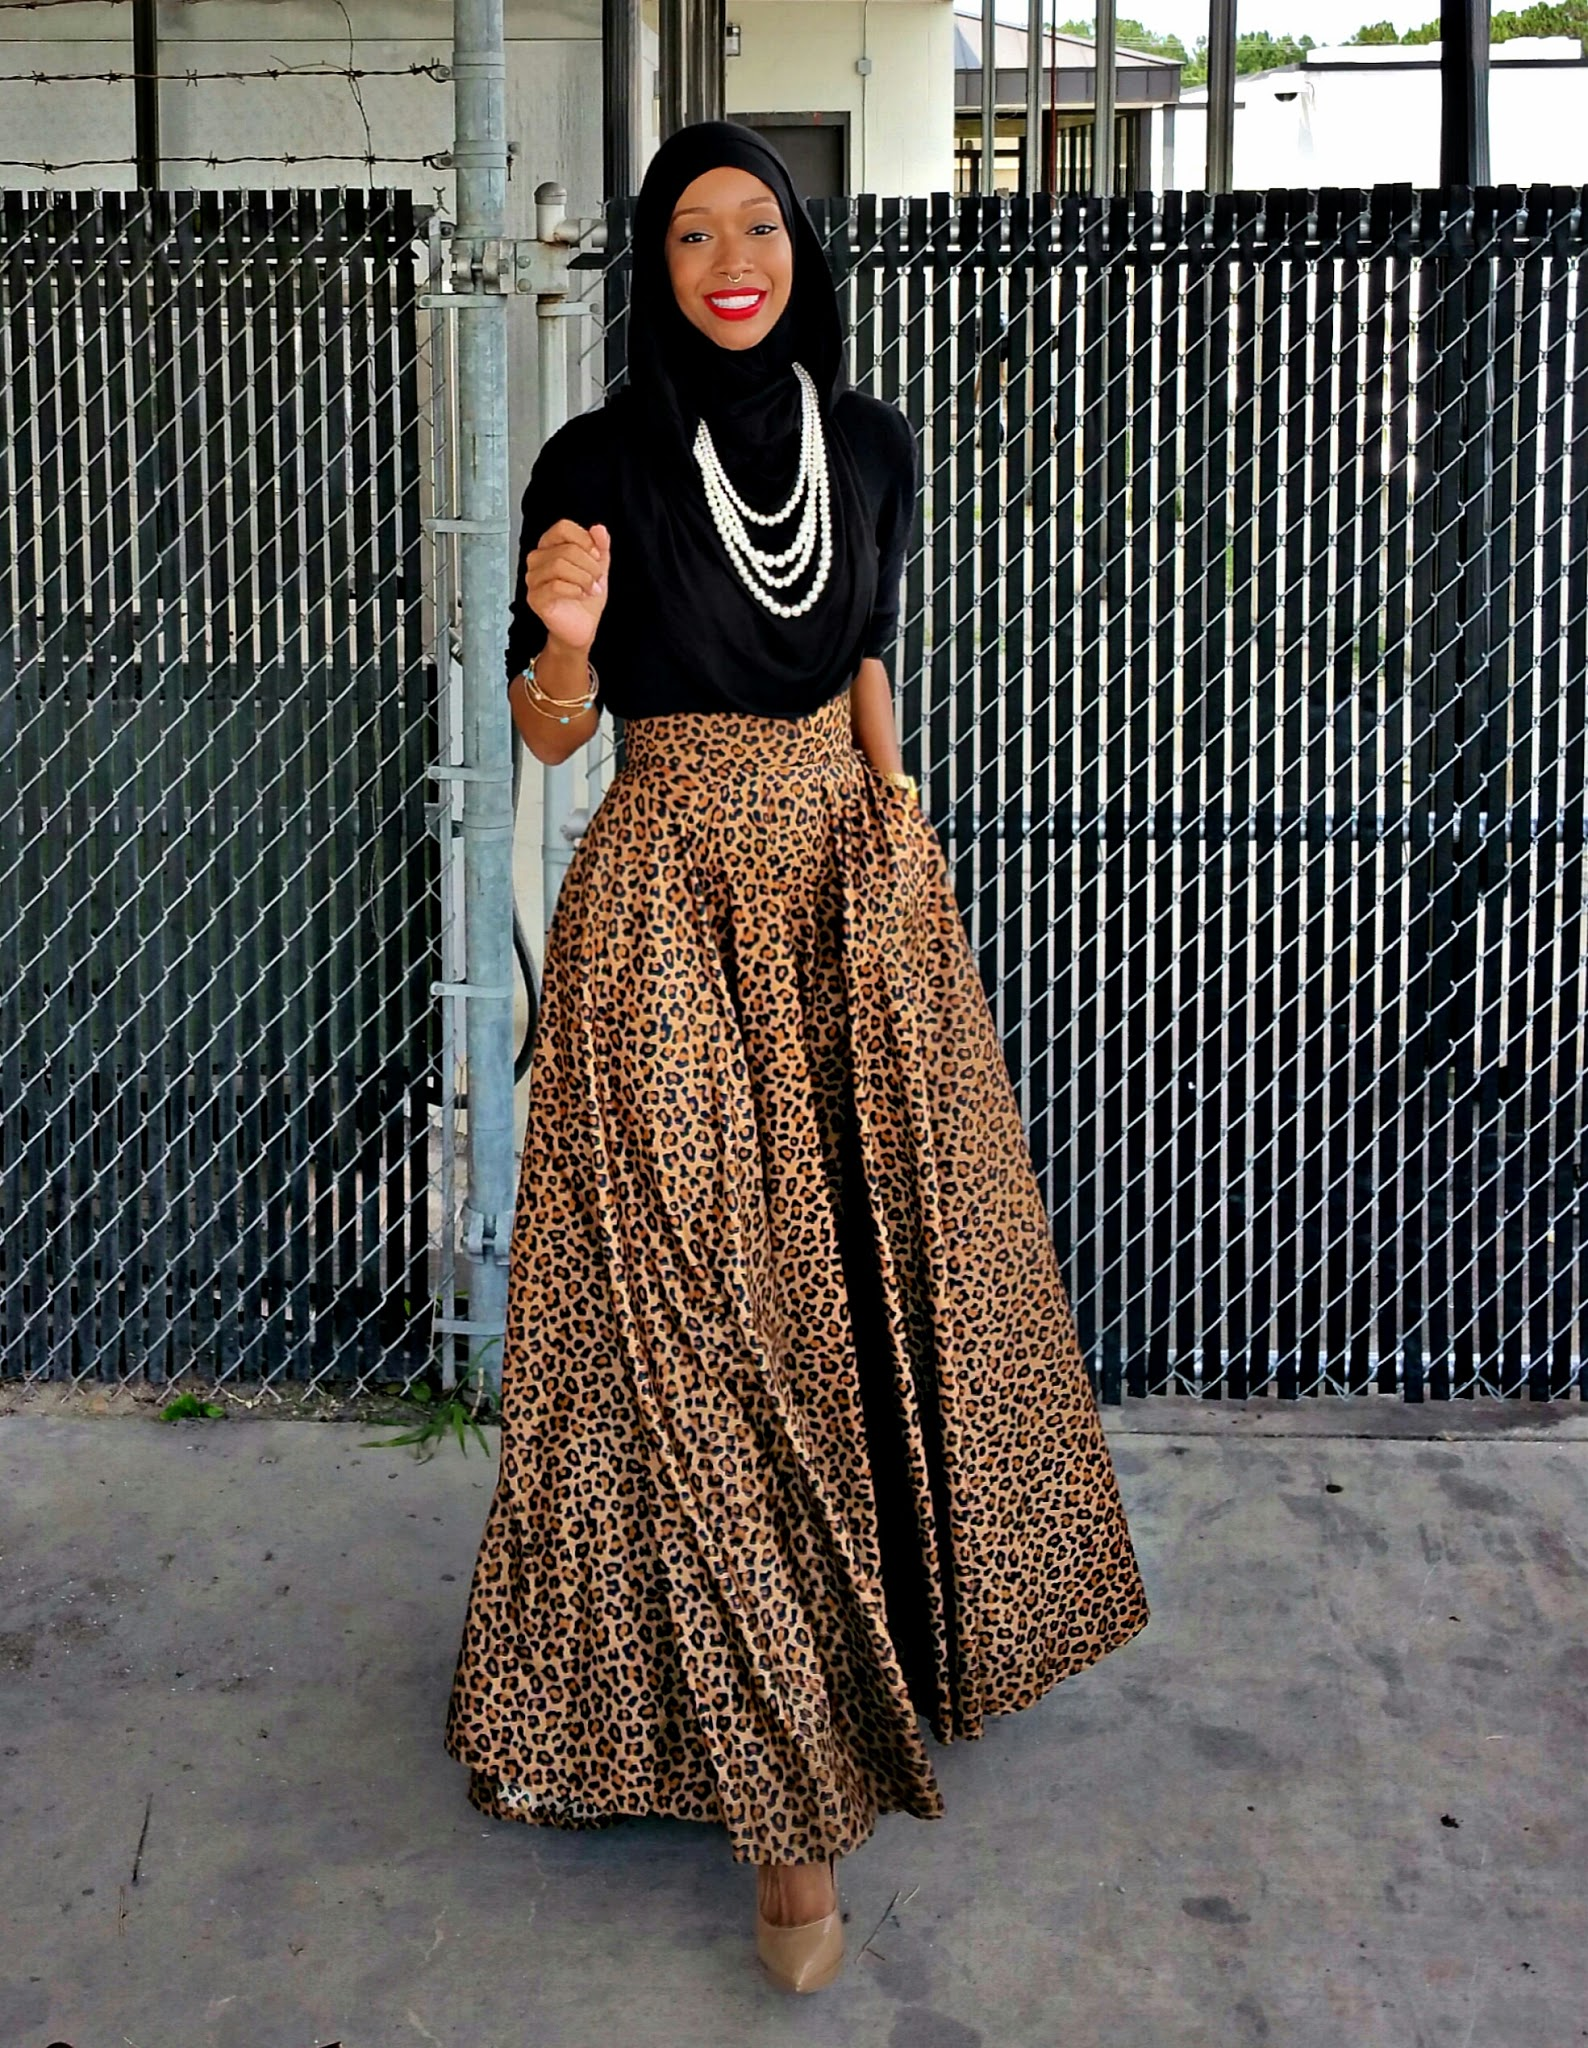 Muslim Women Fashion and Style - Muslim Fashionistas